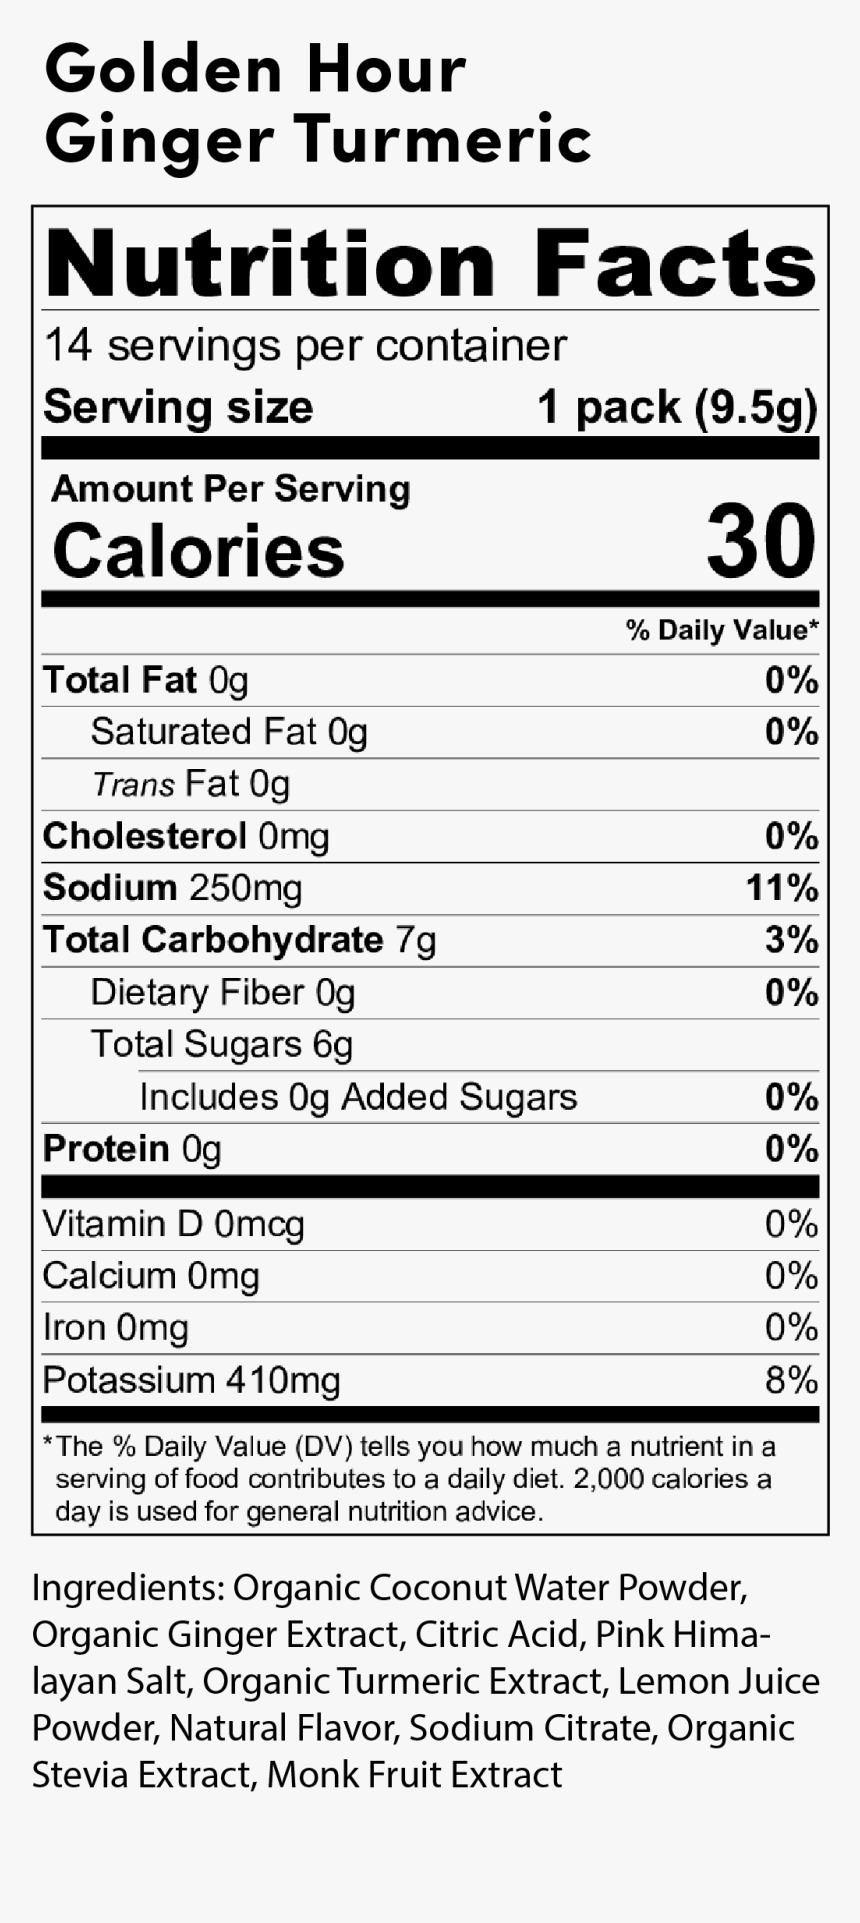 Nutrition Facts Nutrition Facts Of Brown Rice Hd Png Download Kindpng